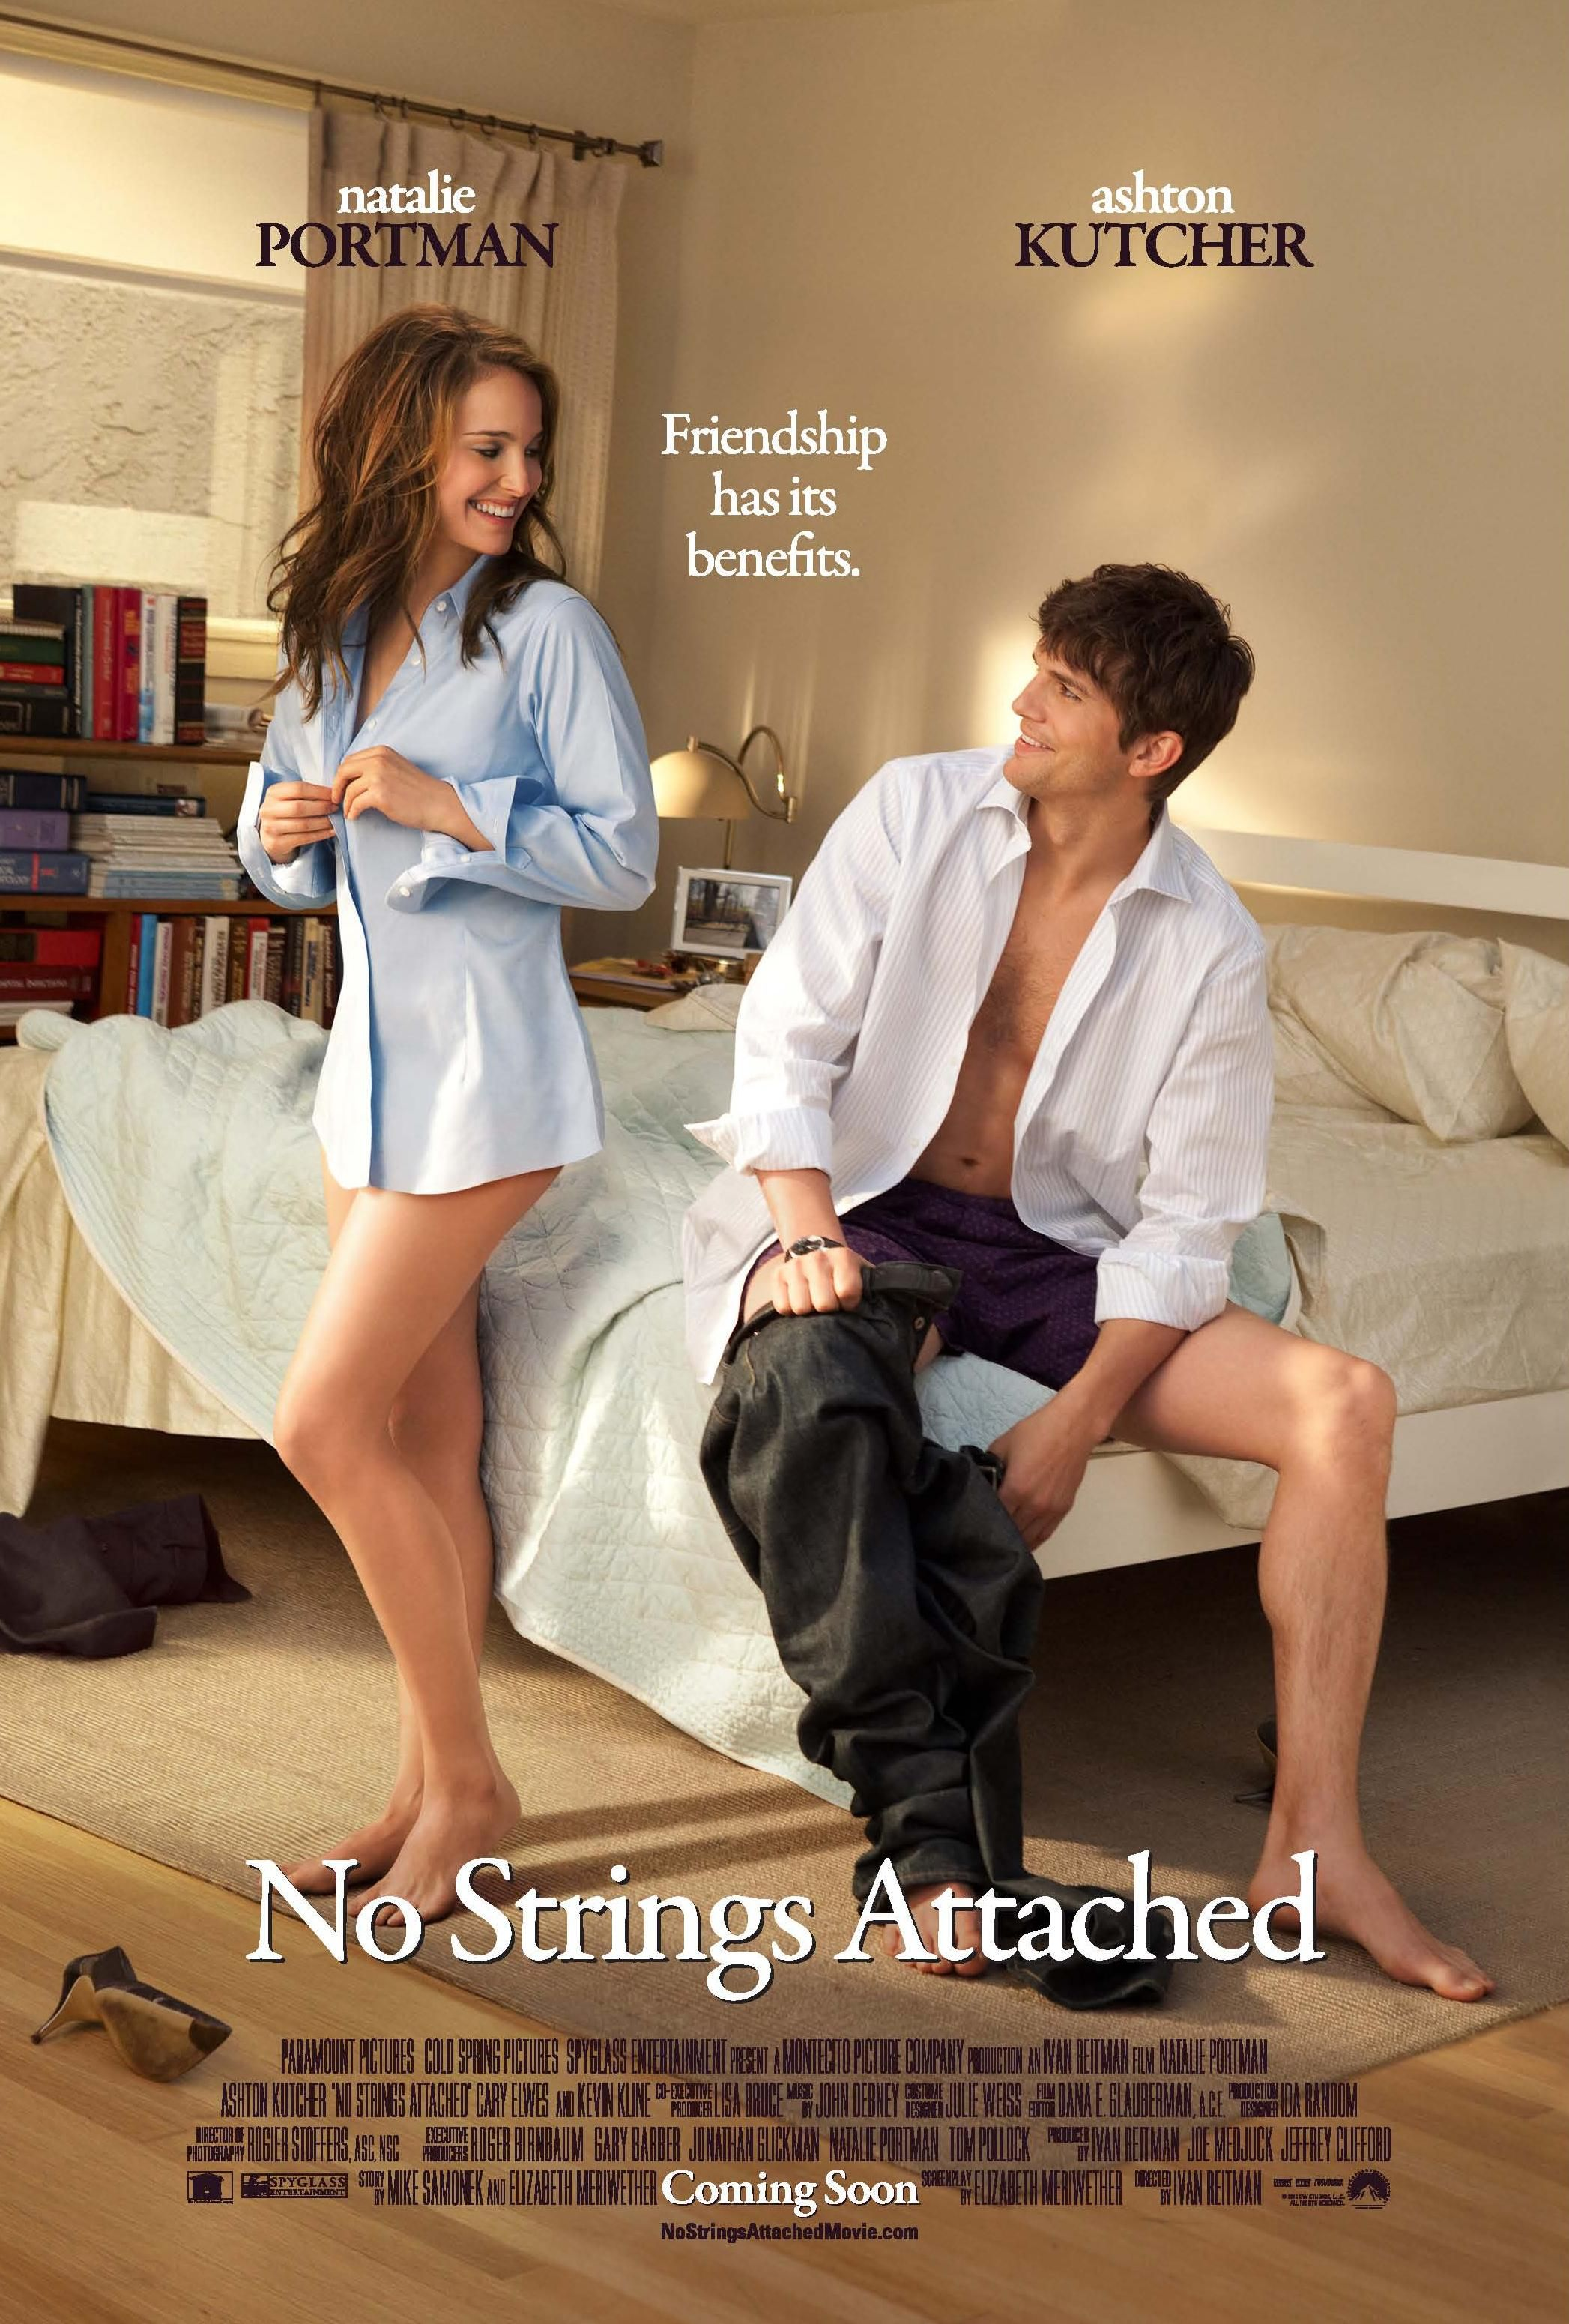 No Strings Attached Romantic Comedy Movies Comedy Movies